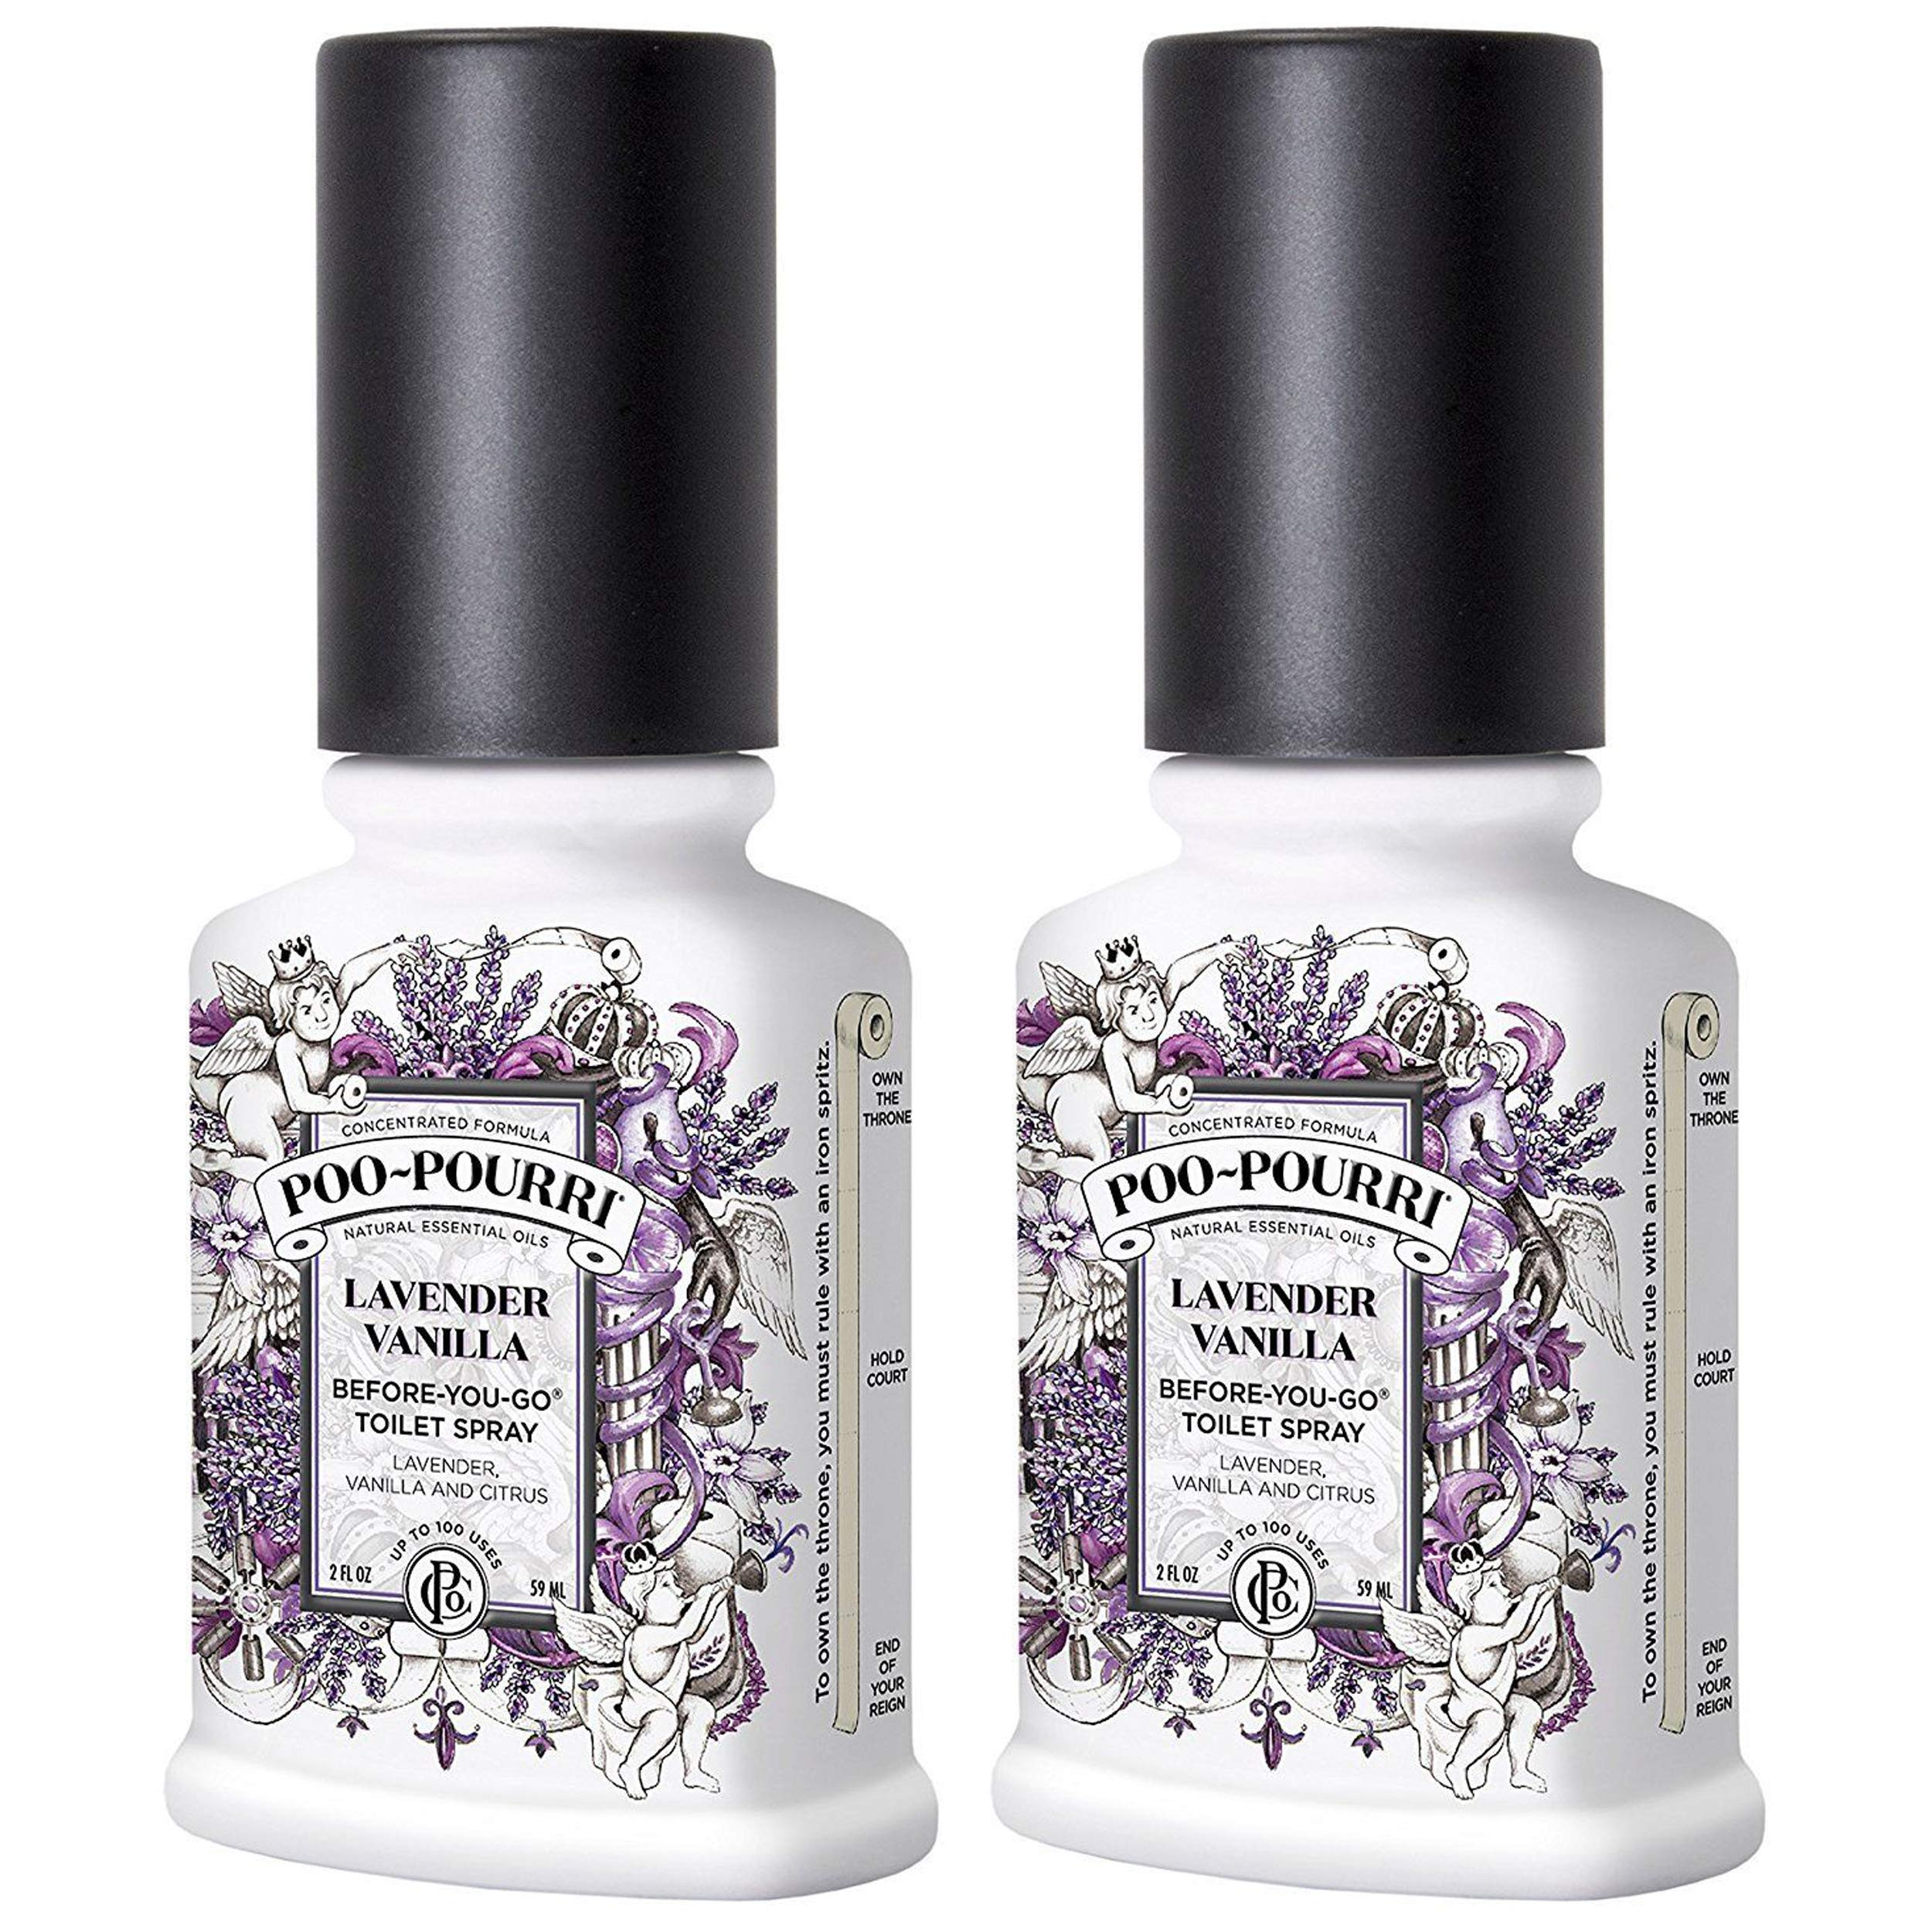 Poo-Pourri Before-You-Go Bathroom Spray, Lavender Vanilla - 2 Ounce, 2 Pack with Ornament Box   by Poo-Pourri (Image #1)